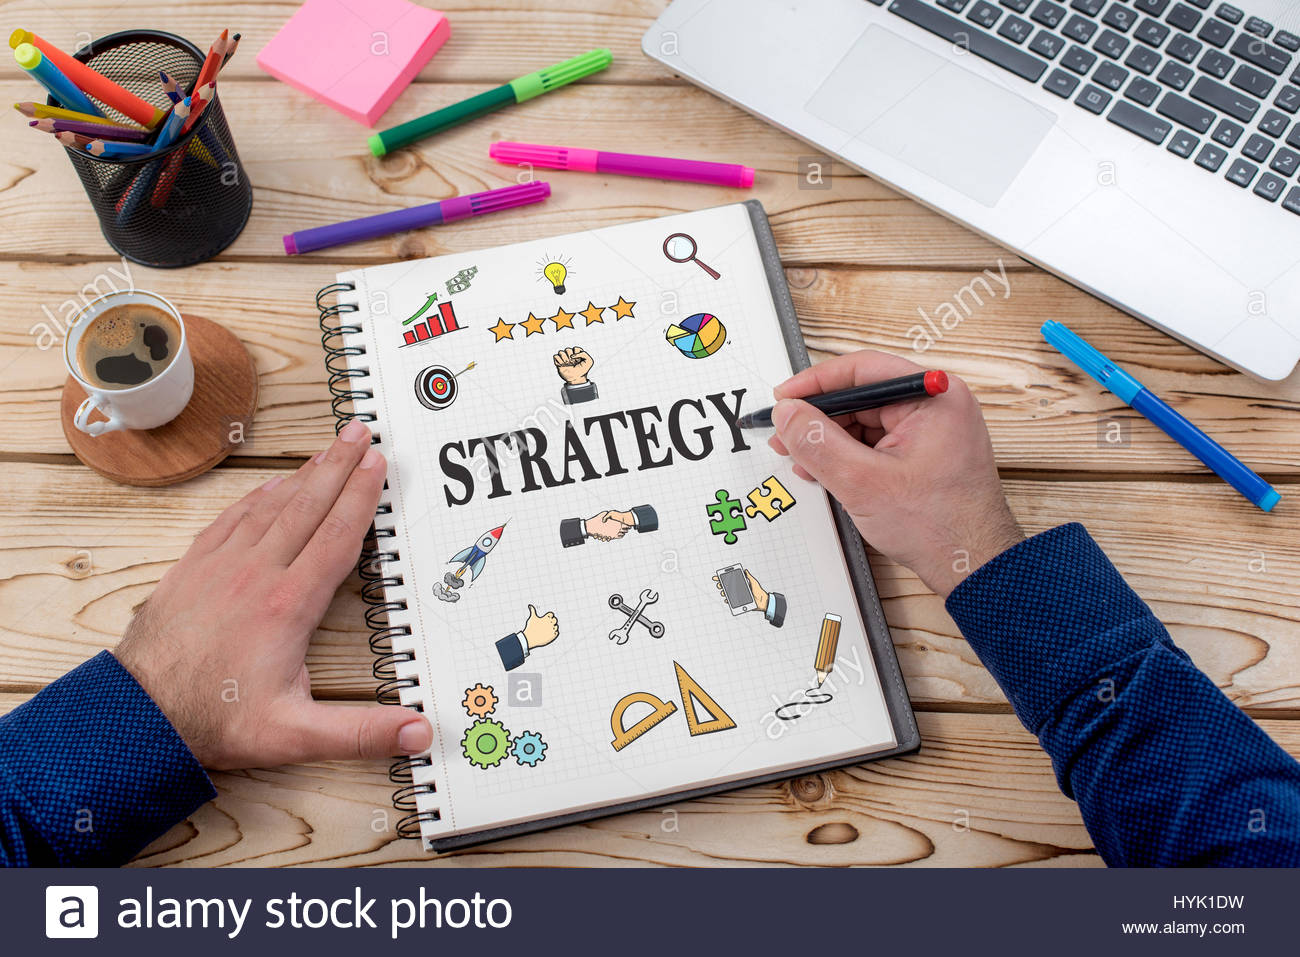 Strategy Concept With Various Hand Drawn Doodle Icons On Paper In Office - Stock Image